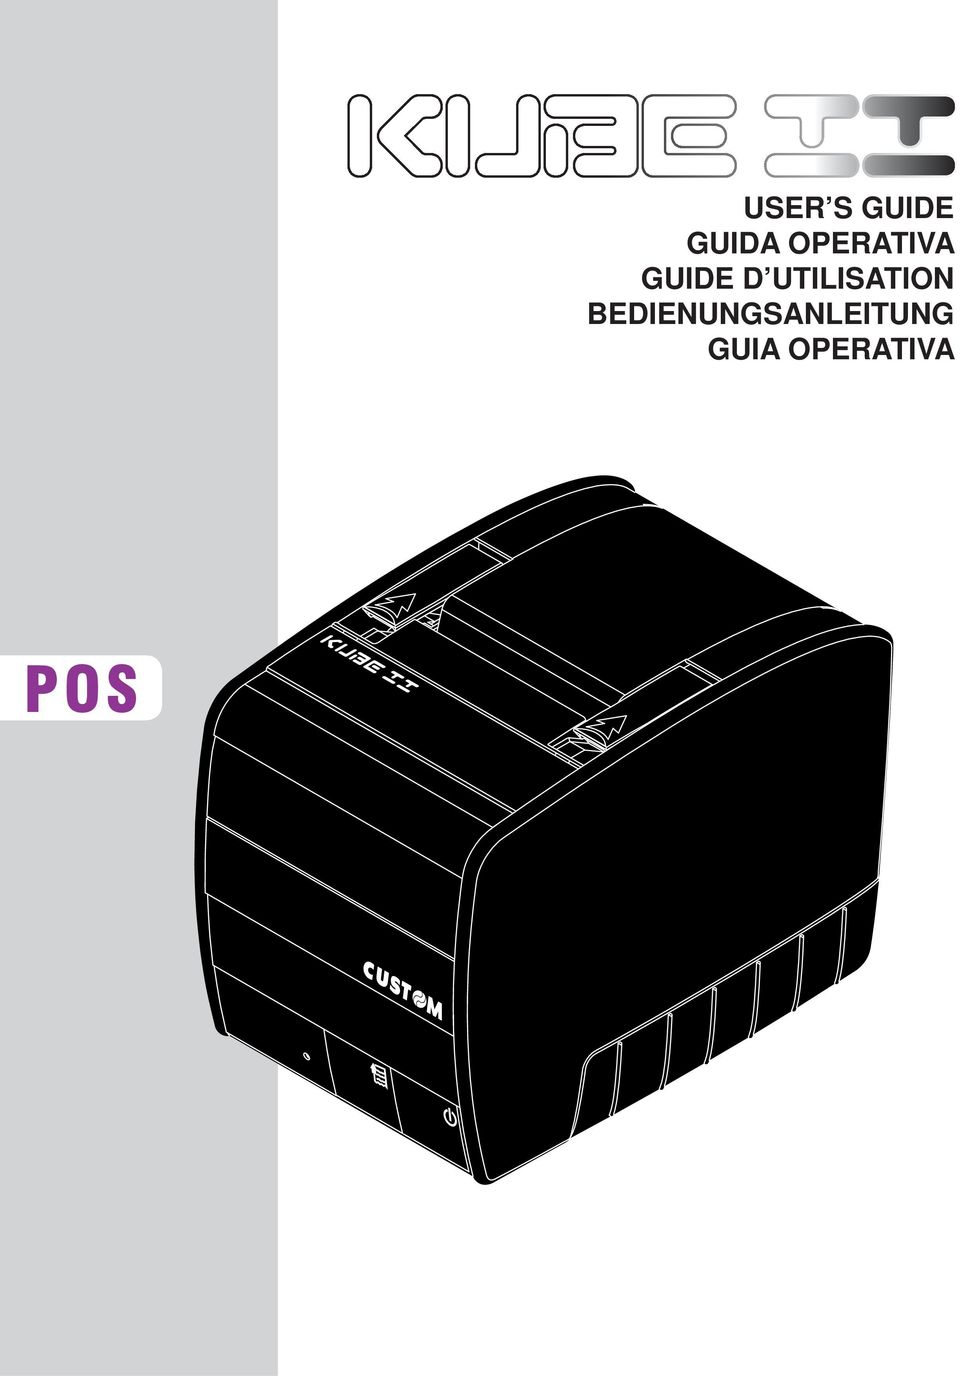 Posligne ODP 200 H-II Manual 15 Pages